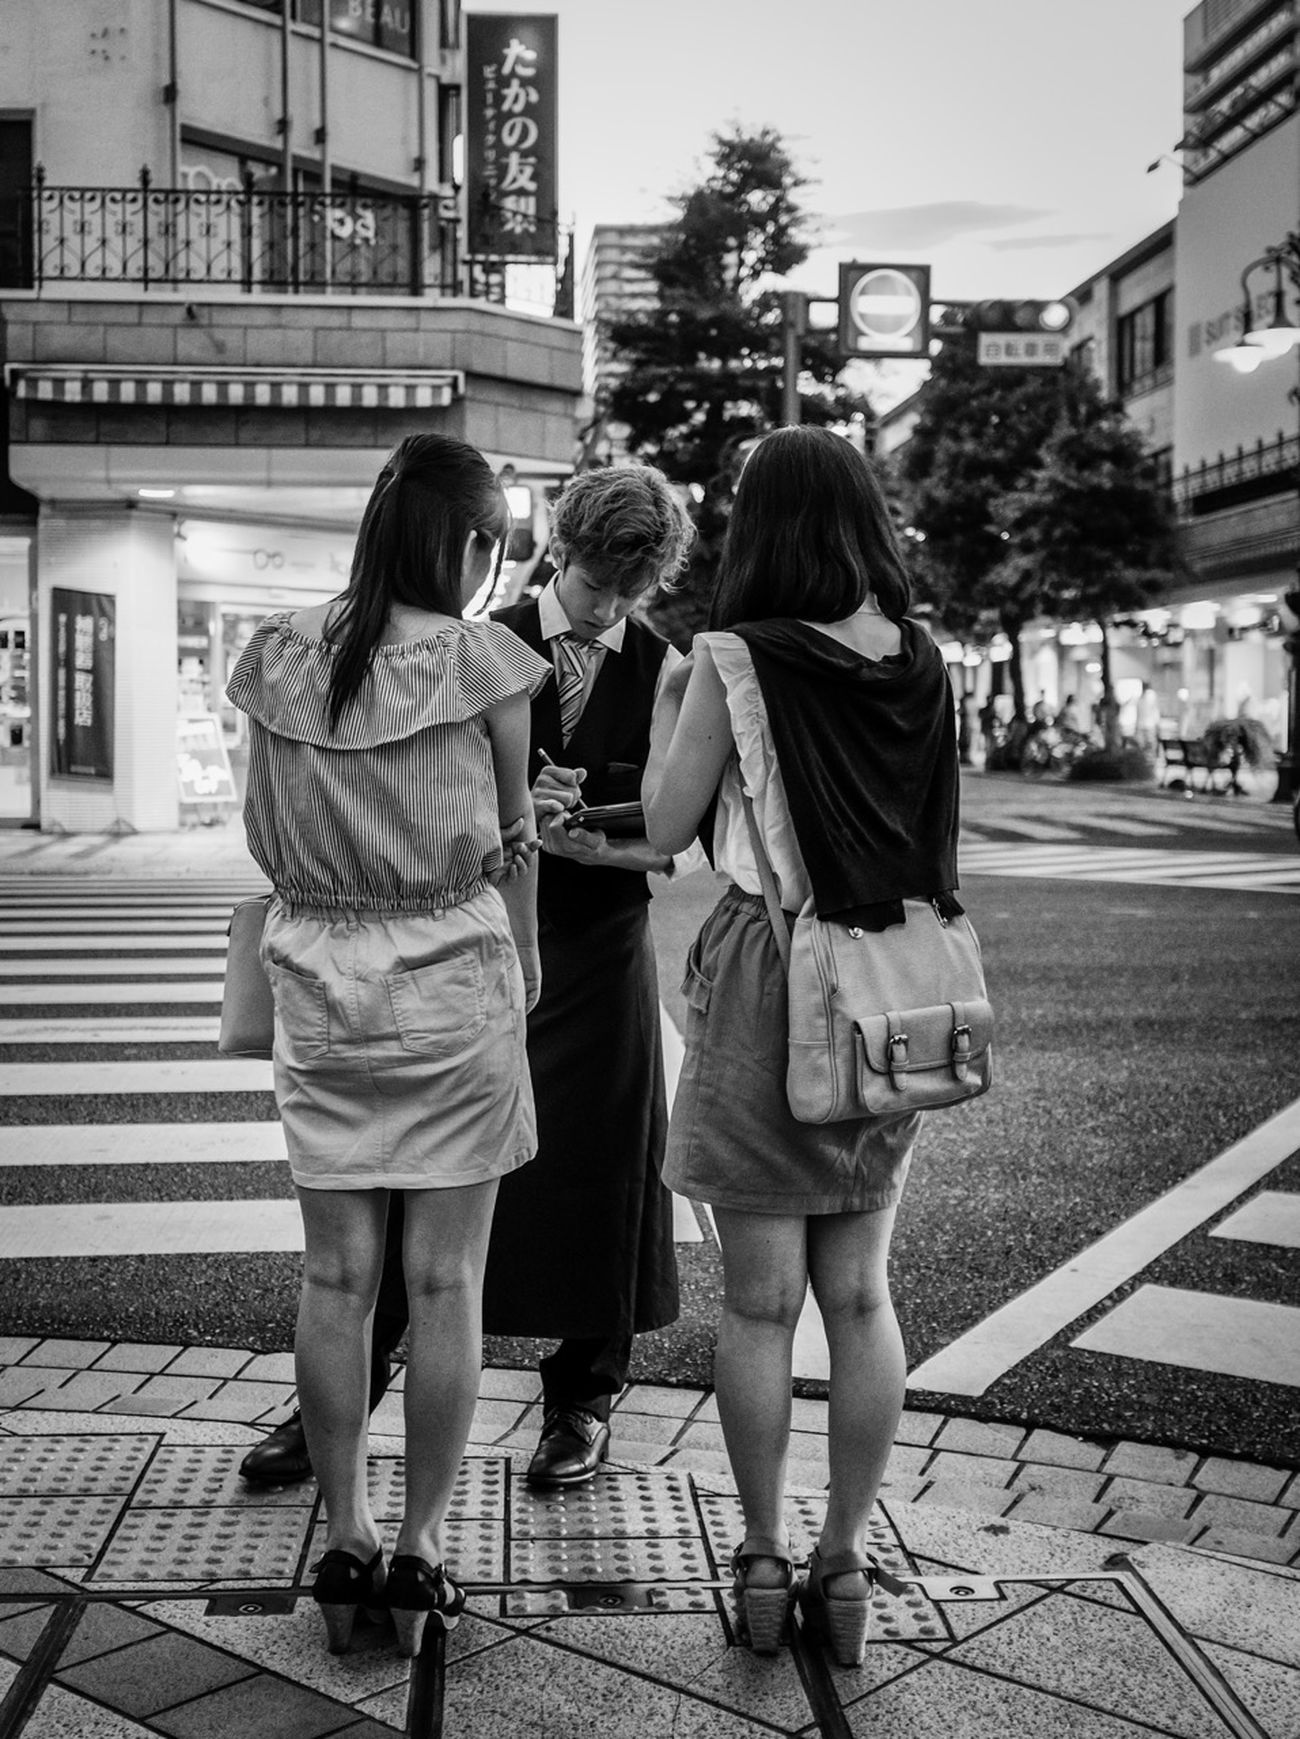 Reserving Japan Japanese  ASIA Streetphoto_bw Streetphotography Fashion Style People City FujiX100S